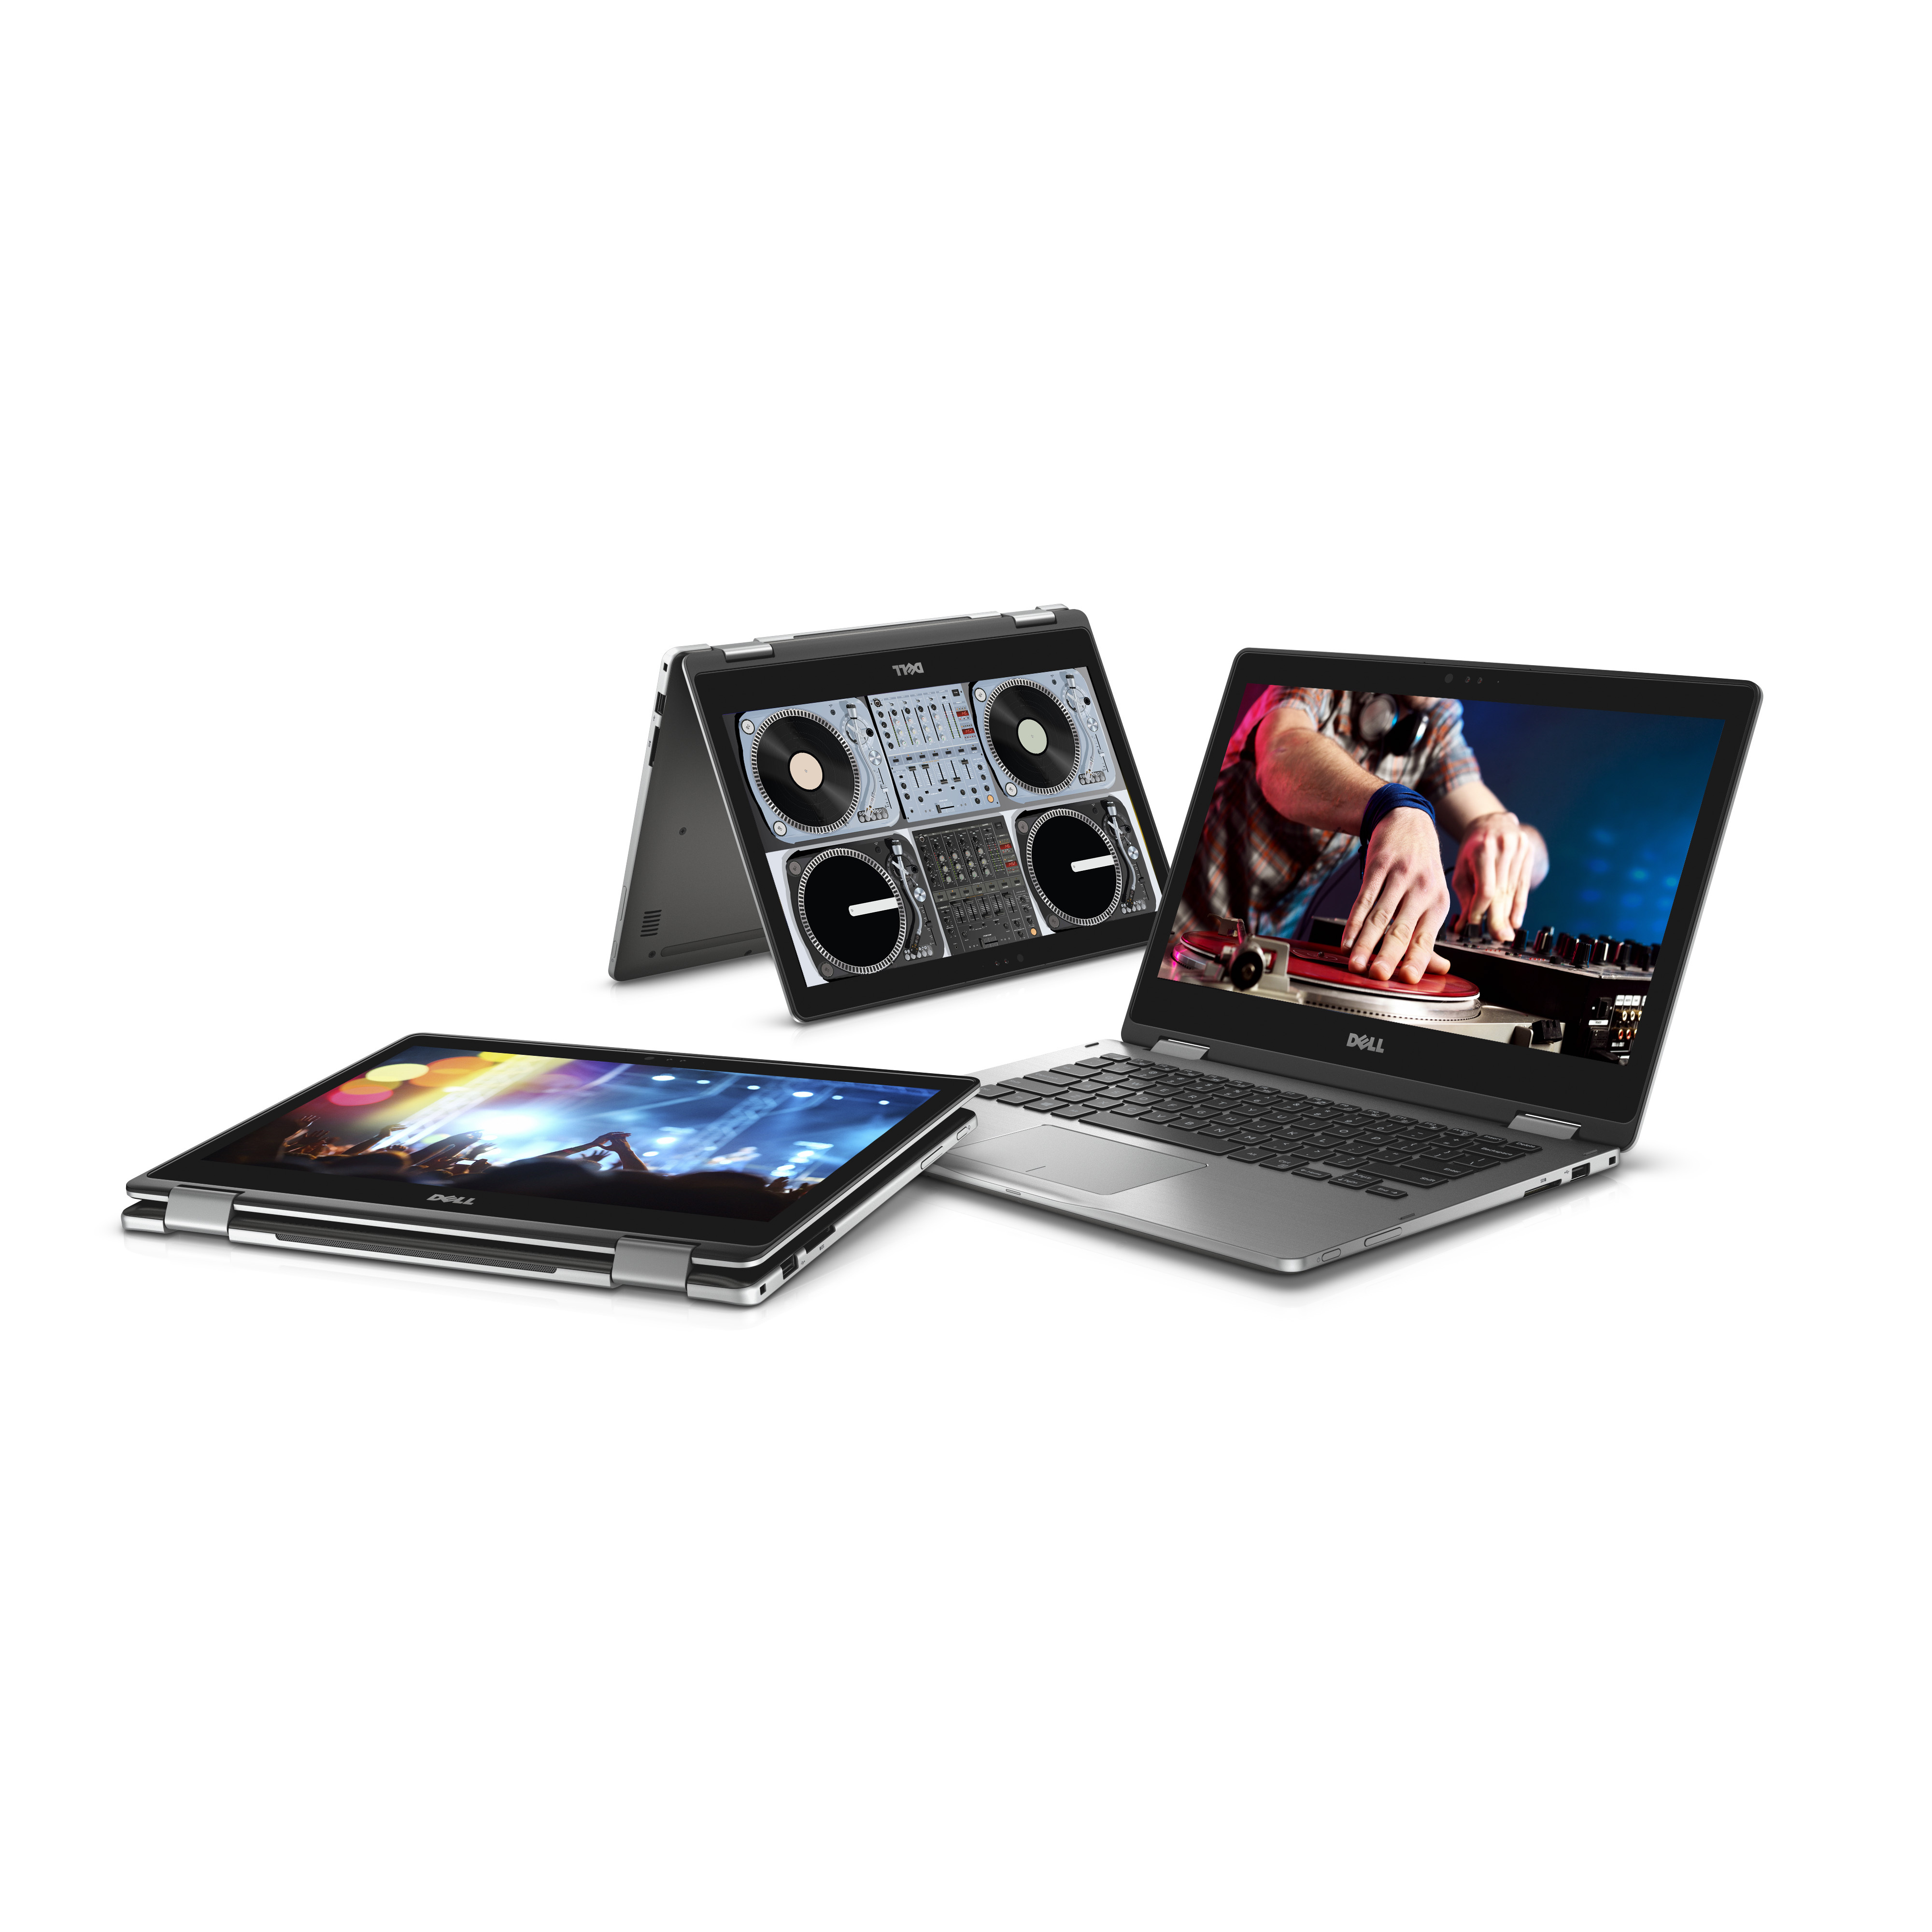 Dell Inspiron 13 7000 2-in-1 BBY (Photo: Business Wire)